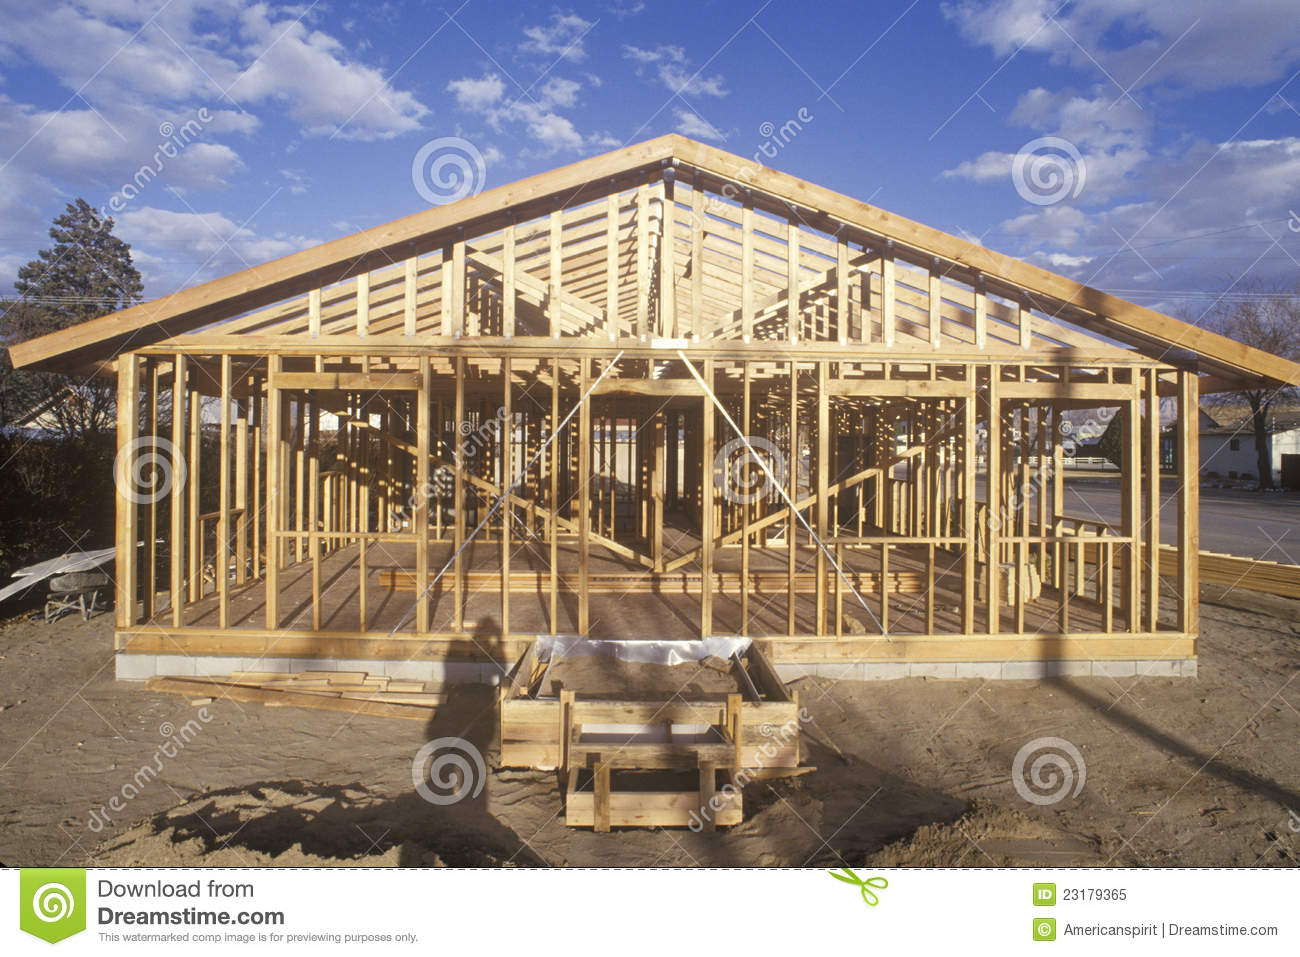 wood frame of house under construction - House Construction Program